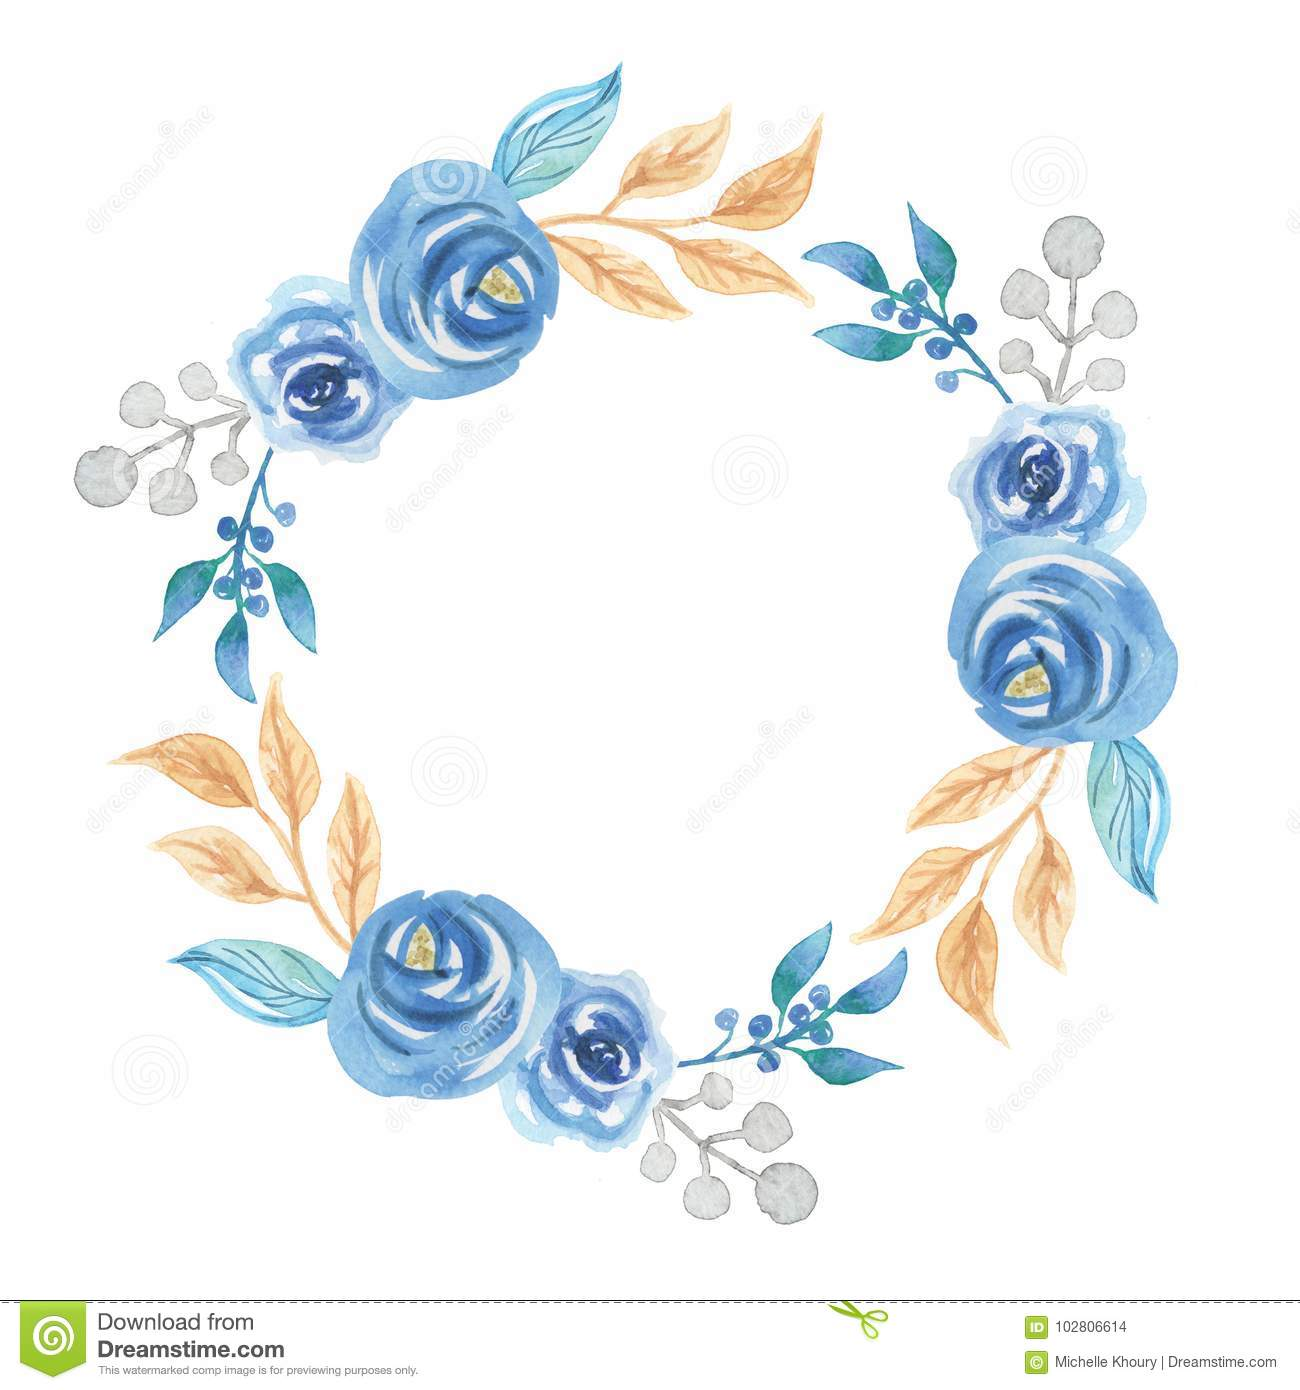 Watercolor leaves blue flowers wreath garland stock illustration hand painted watercolor leaves blue green wreath garland izmirmasajfo